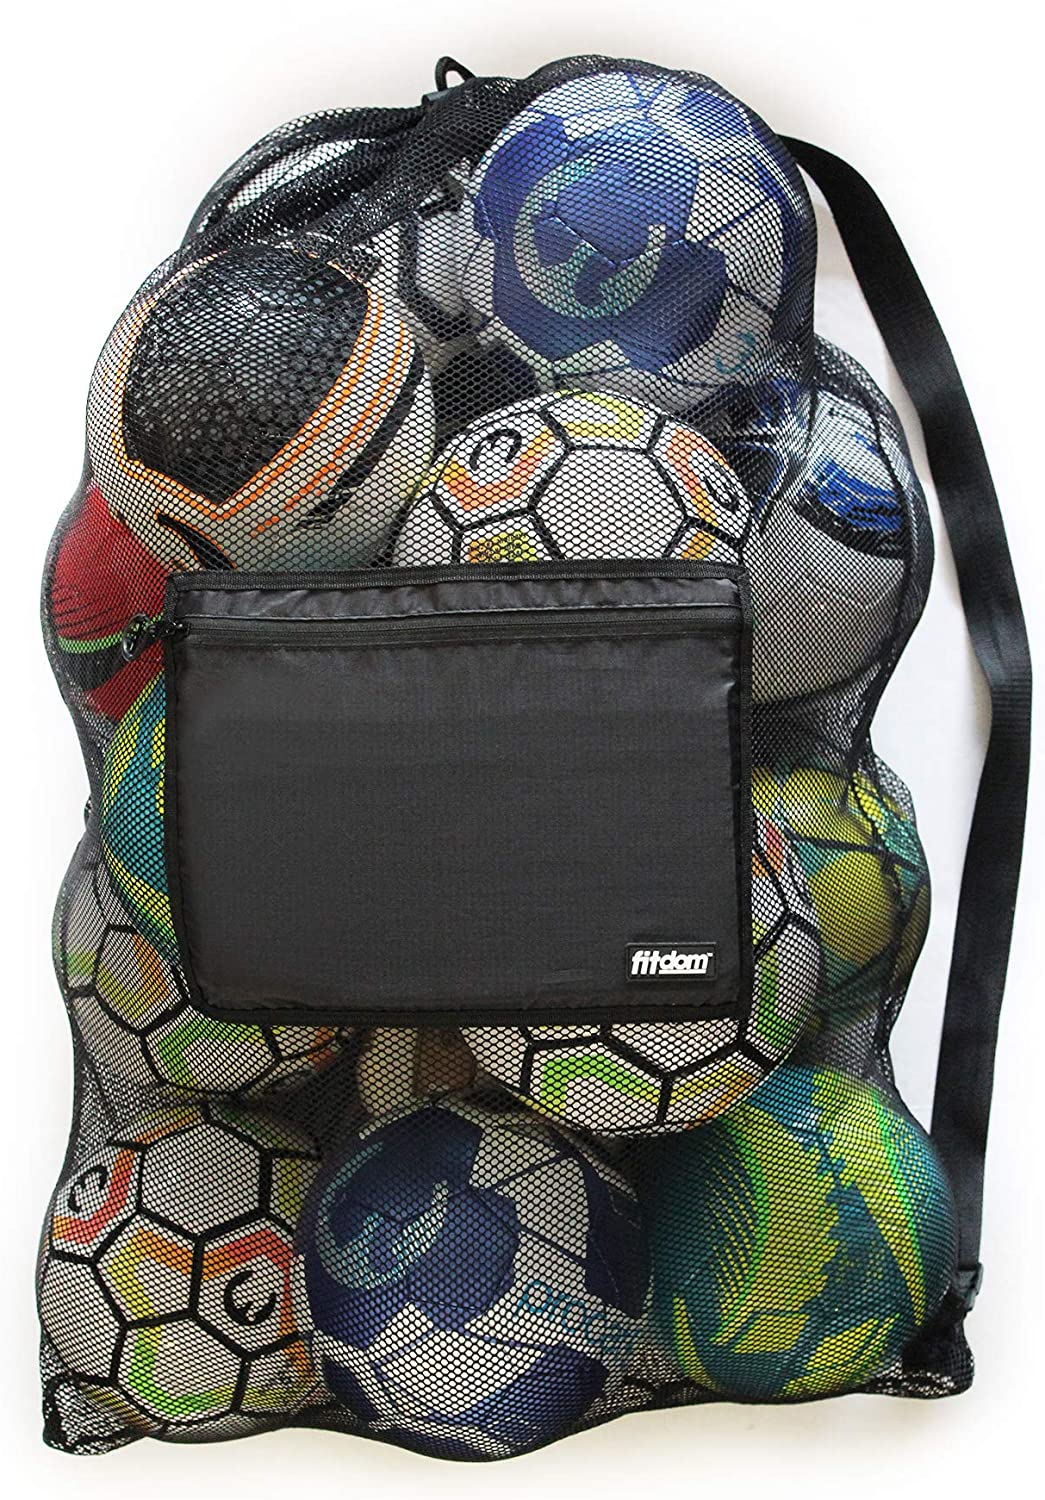 Fitdom Extra Large Austin Mall Heavy Large-scale sale Duty Mesh Wa Bag. Best for Soccer Ball